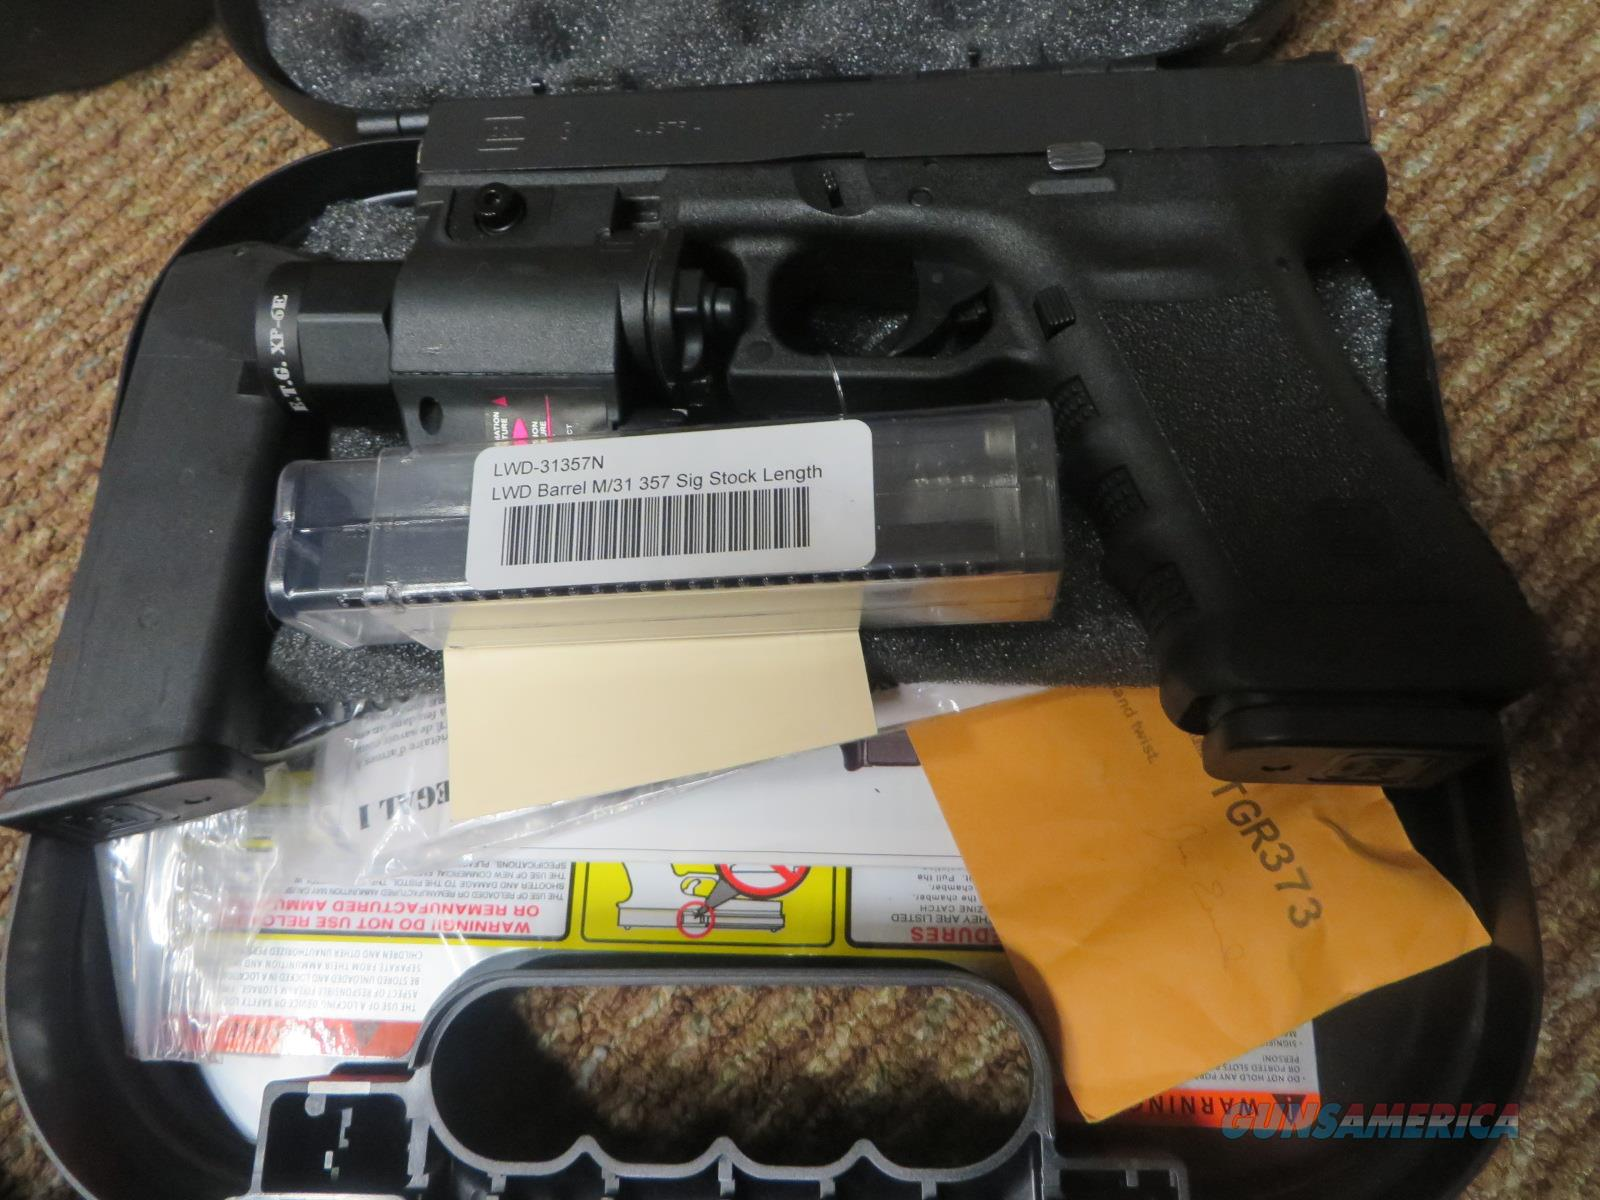 GLOCK 31 *WITH HOLSTER/ORIGINAL BOX/1 EXTRA MAGAZINE/1 EXTRA BARREL/NIGHT SIGHTS*  Guns > Pistols > Glock Pistols > 31/32/33